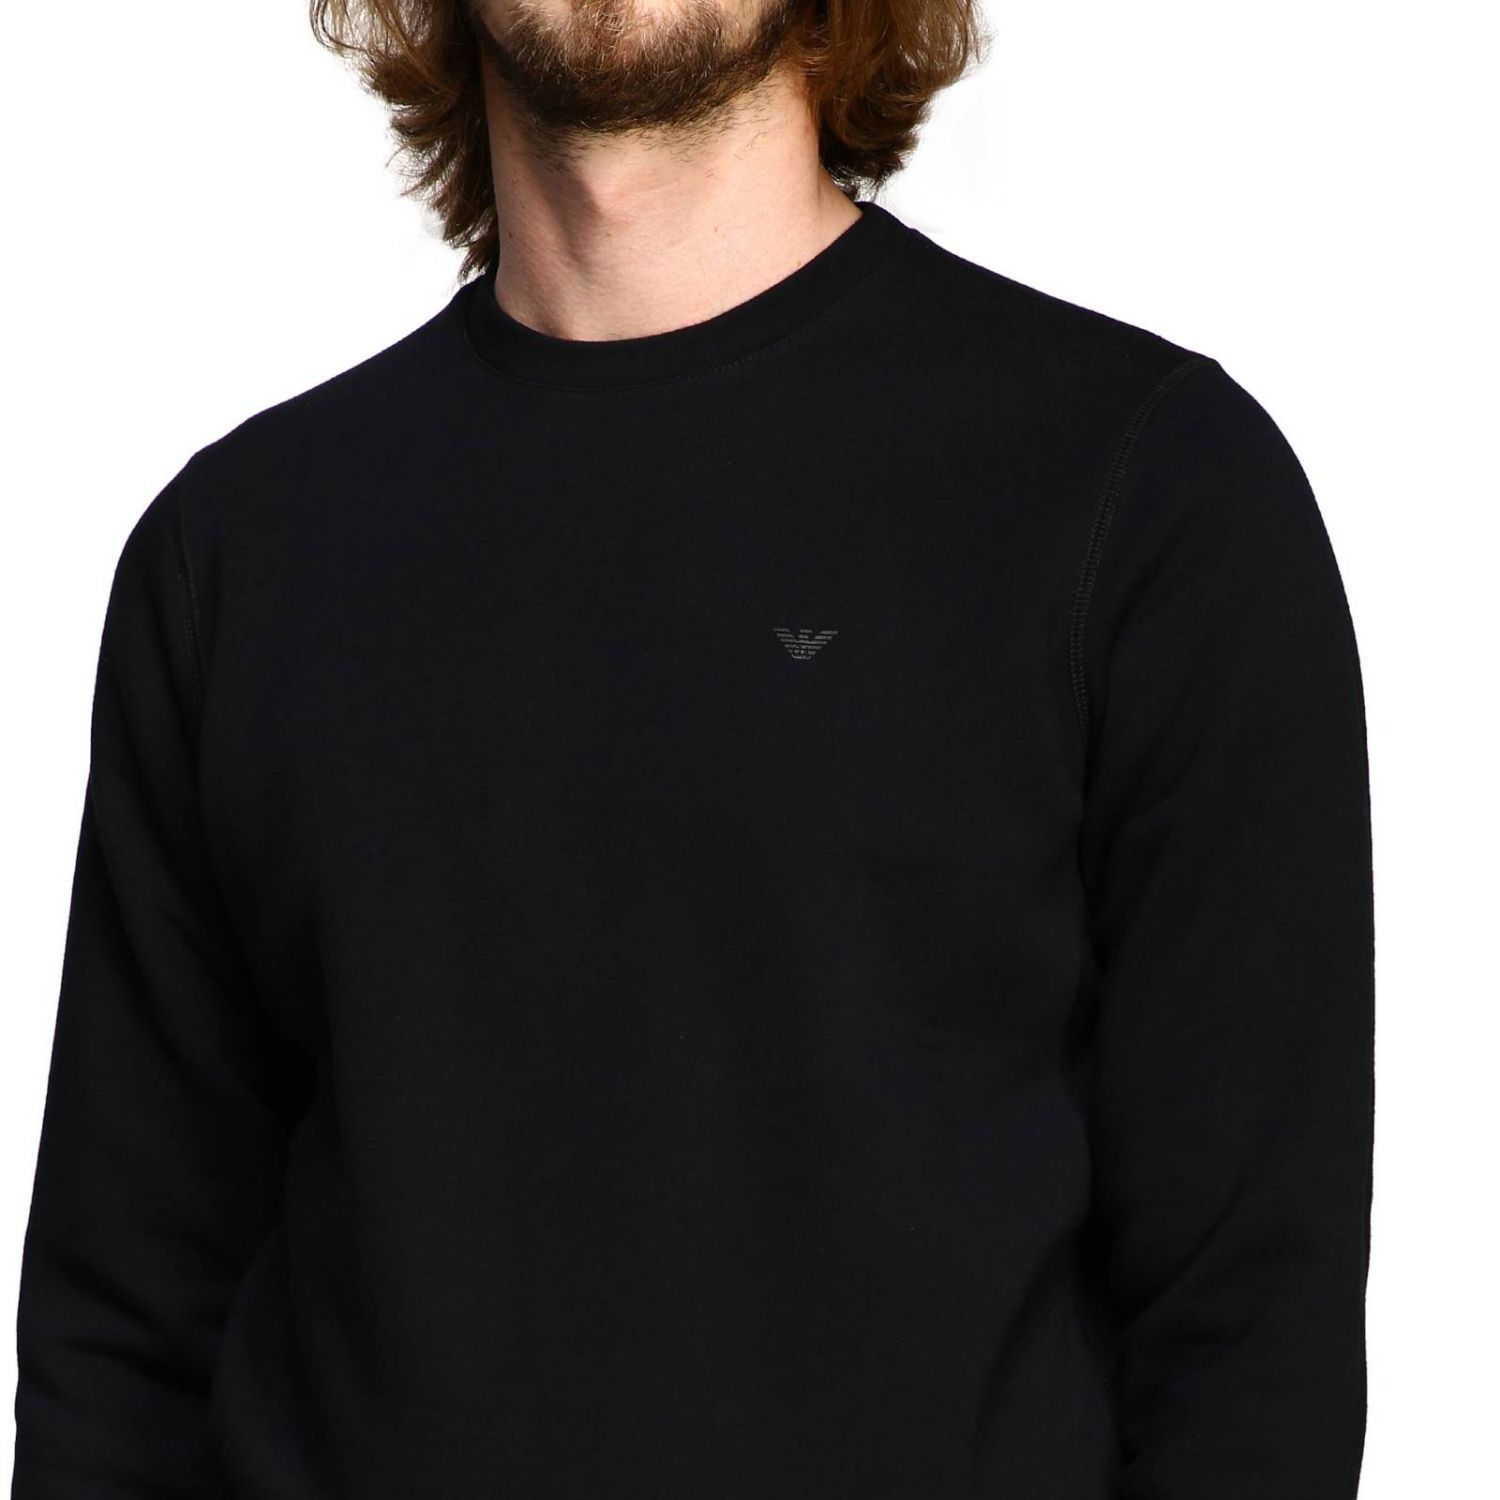 Sweater men Emporio Armani black 5